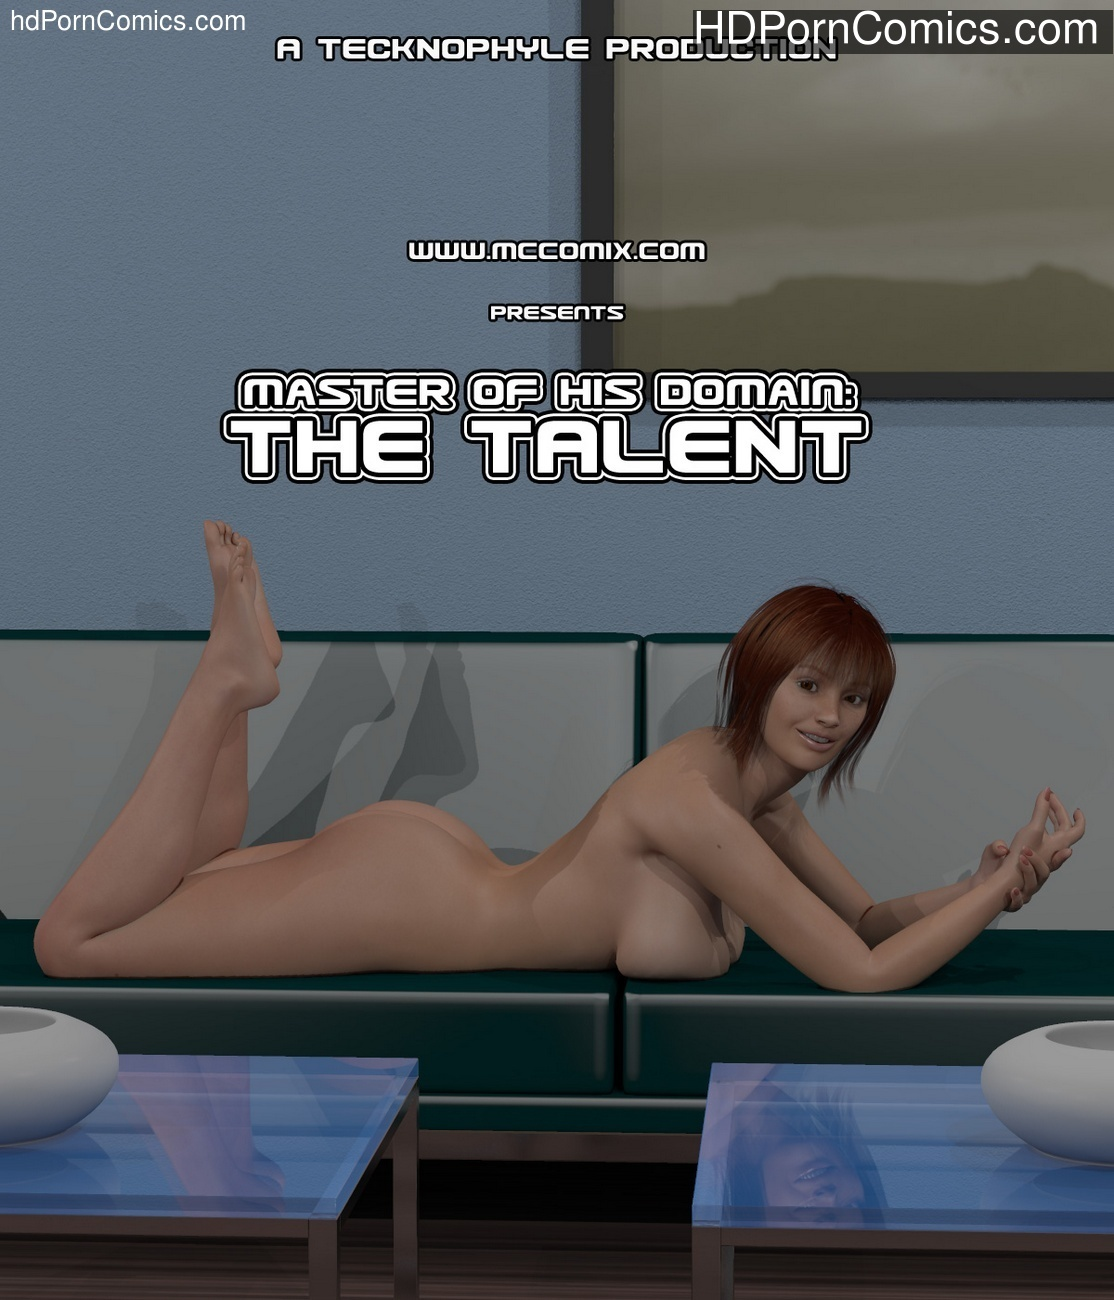 Master Of His Domain - The Talent 1 free sex comic